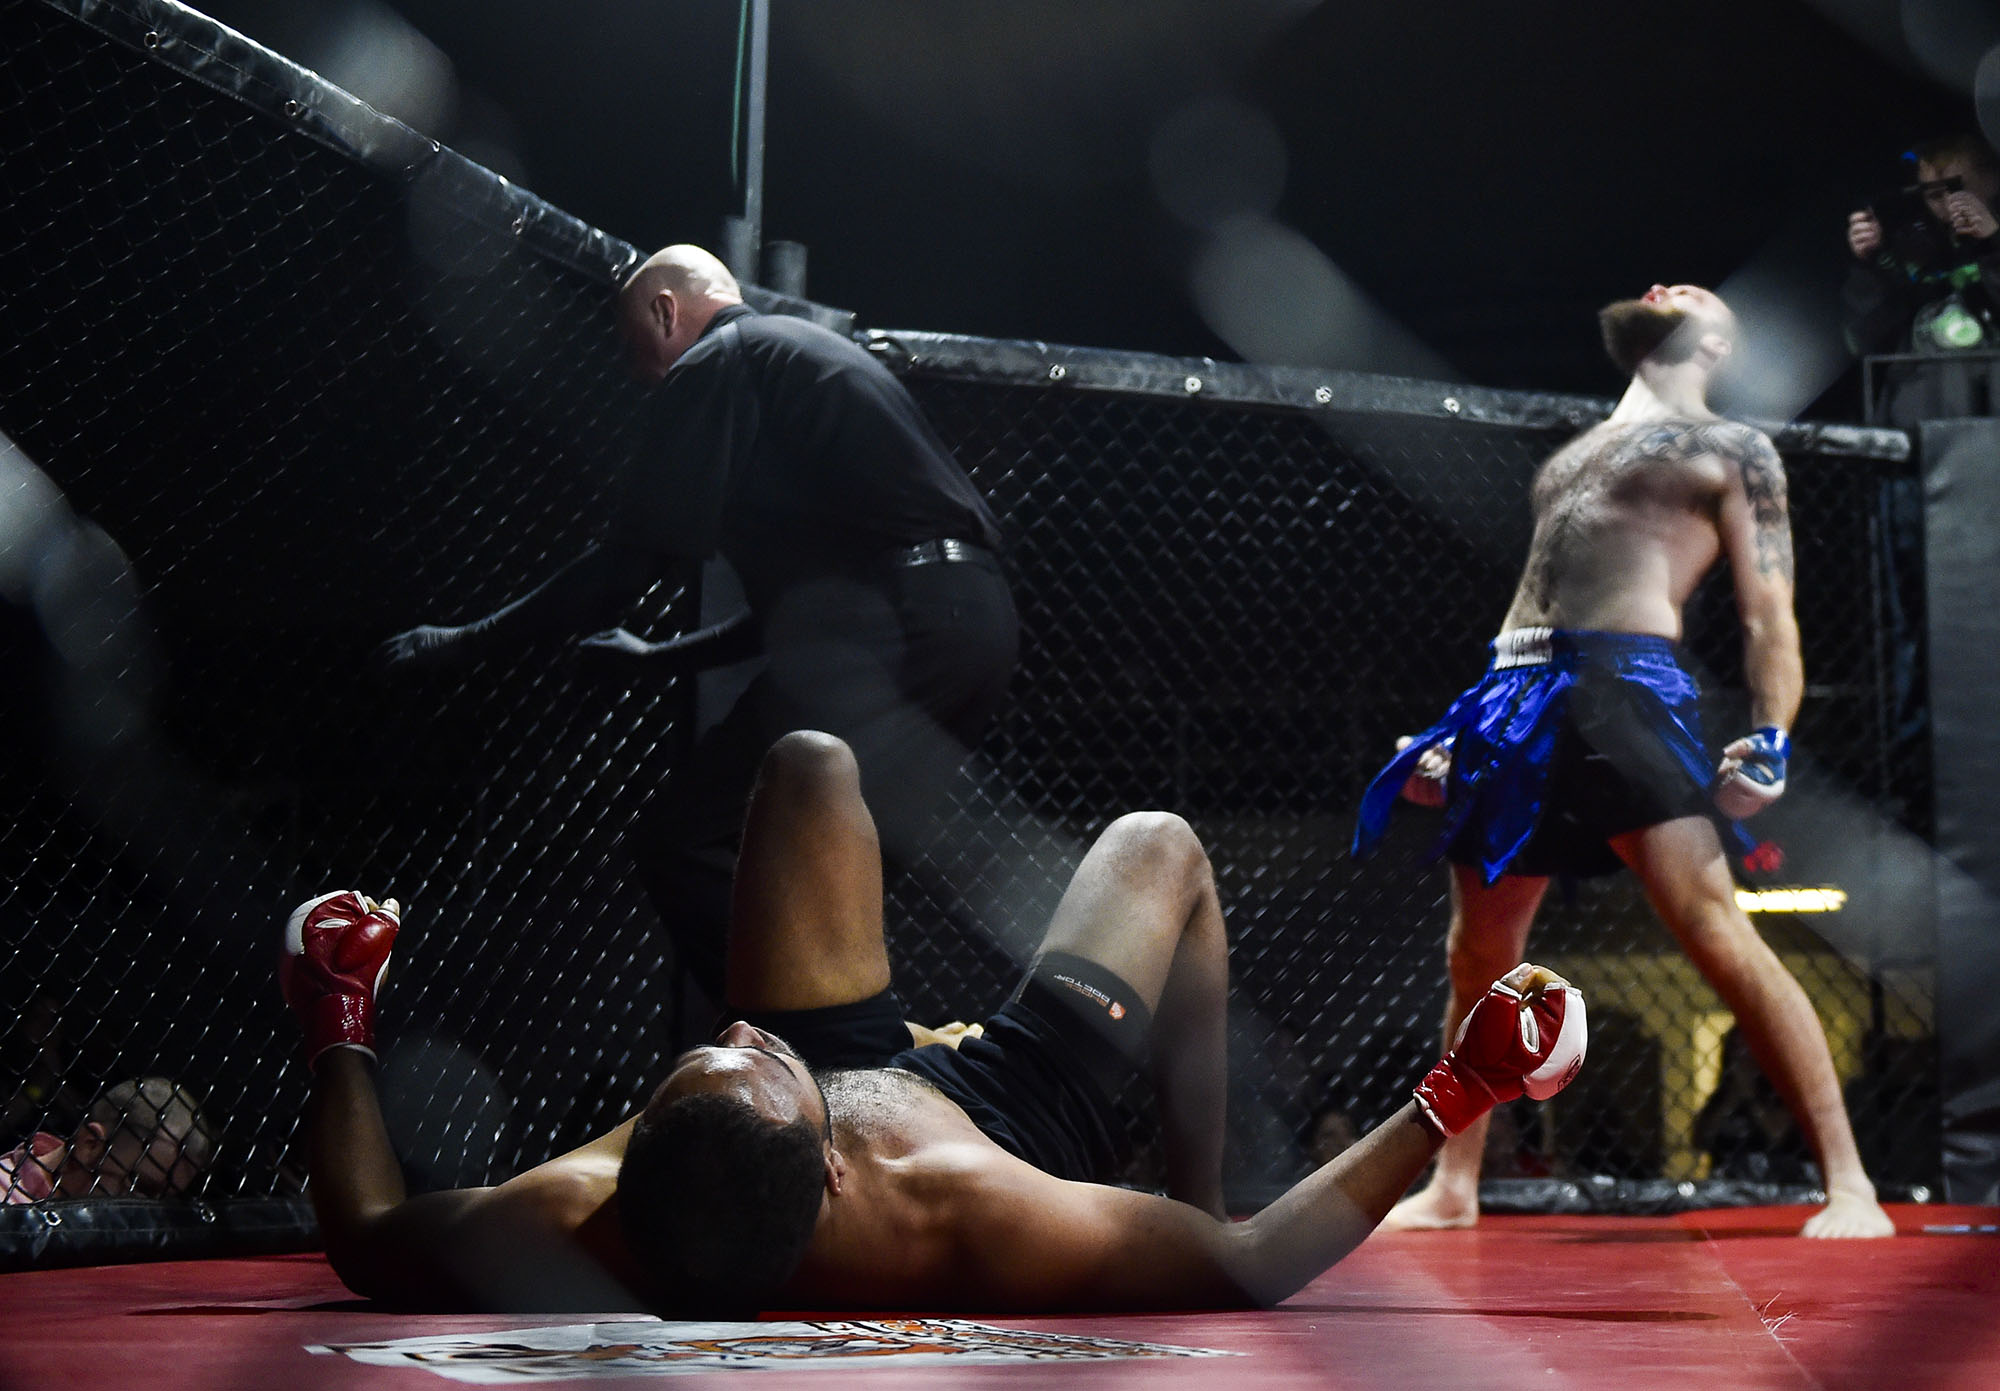 Zac 'The Wolfman' Dominique howls after his subission victory over Joshua Bates during the Warrior Nation Fight Series: Marion Mania III mixed martial arts event held at the Veteran's Memorial Coliseum in Marion, Ohio on February 4th, 2017.